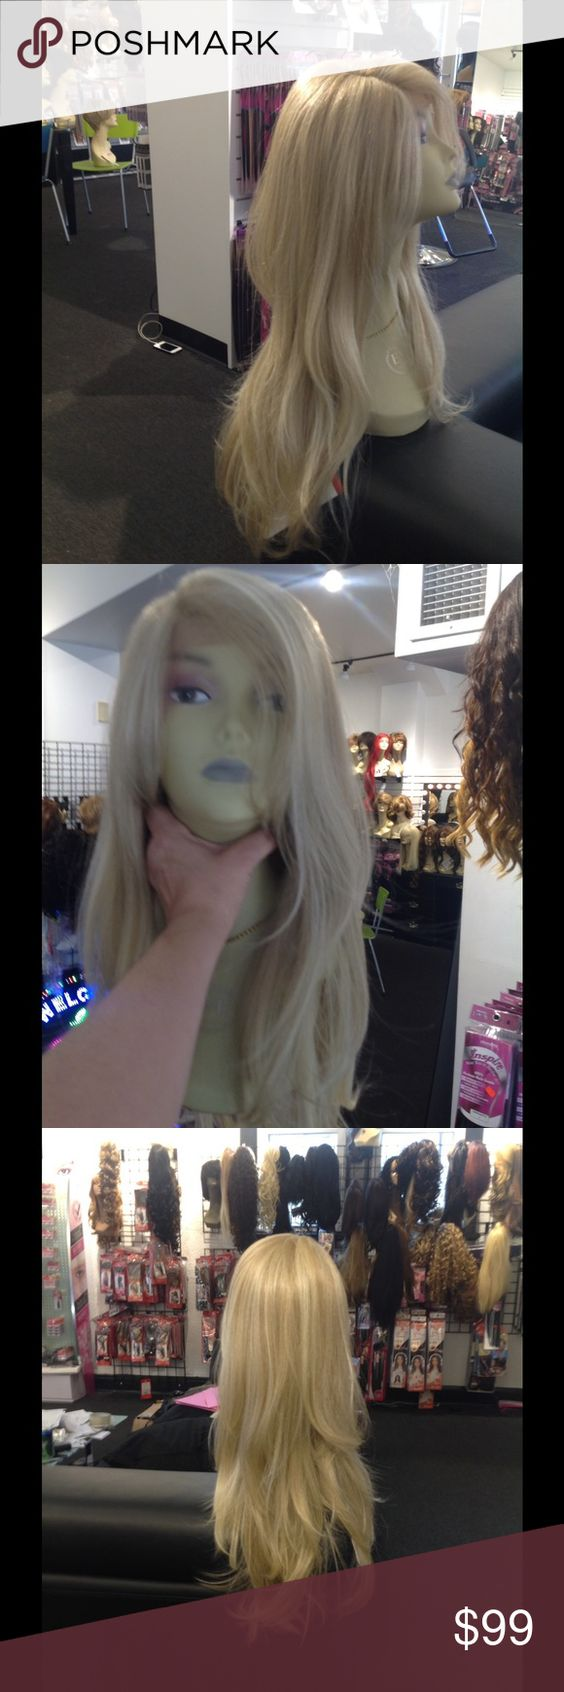 Hair accessories catalog request - Desirable Ash Blonde Lacefront Wig Ash Blonde In Stock Now I Had Many Request For This